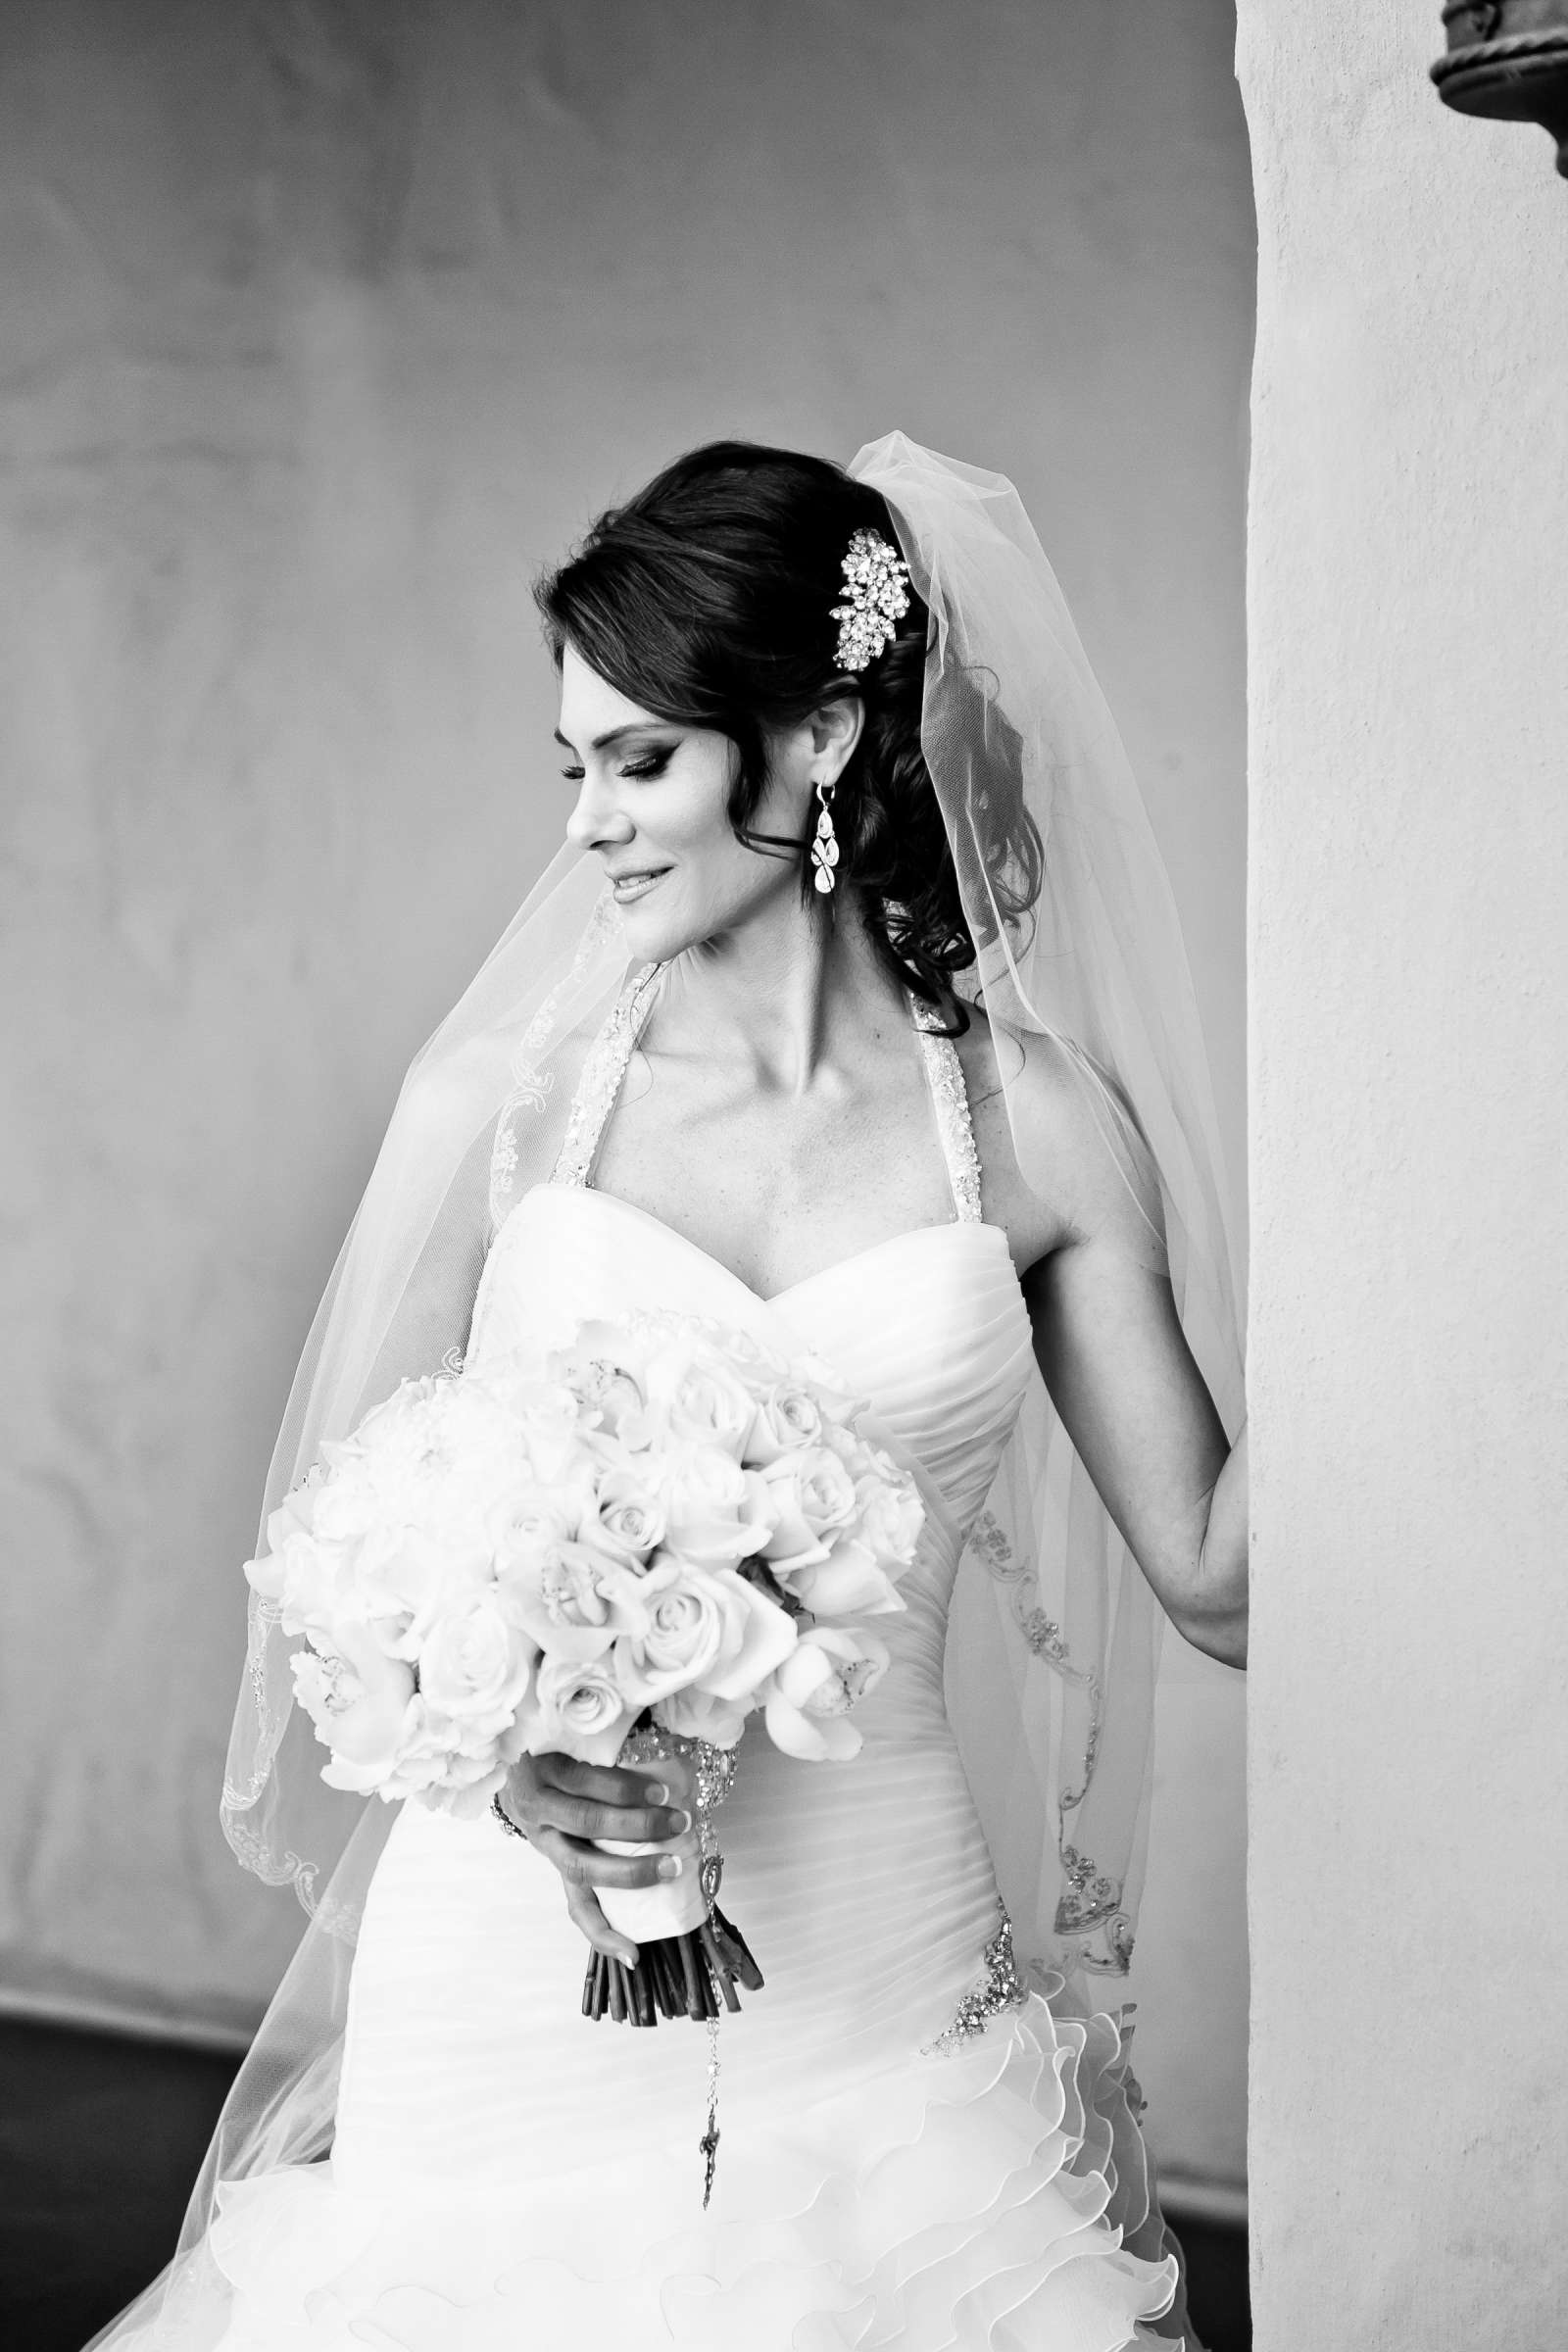 Fairmont Grand Del Mar Wedding, Angela and Tom Wedding Photo #21 by True Photography